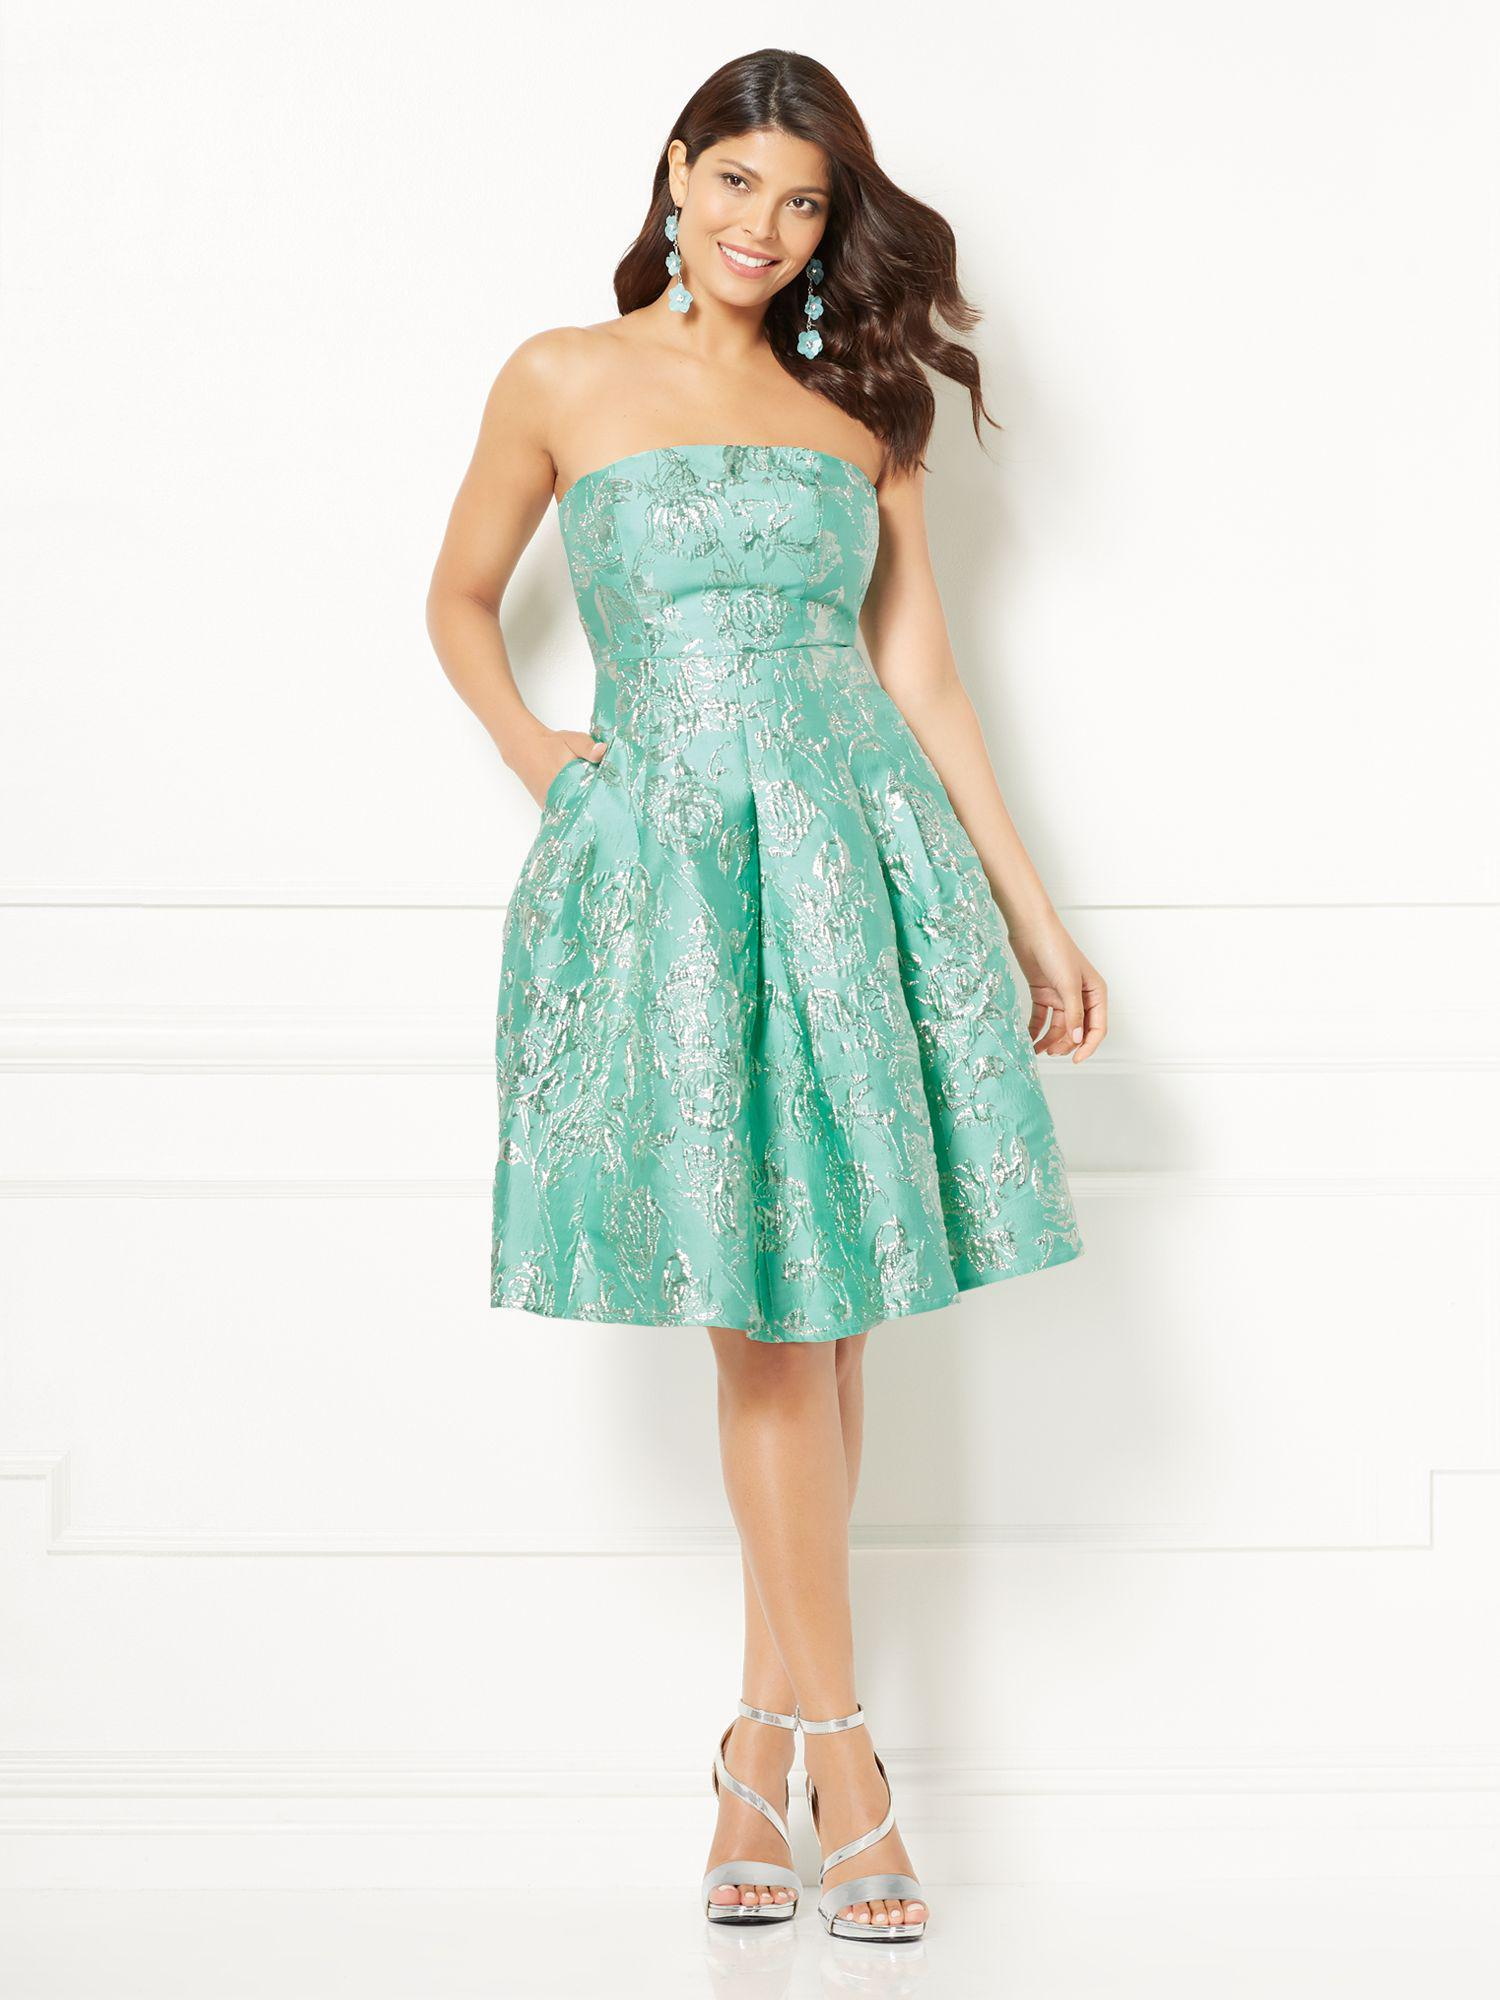 Fine Cocktail Dresses At Lord And Taylor Ideas - Wedding Ideas ...